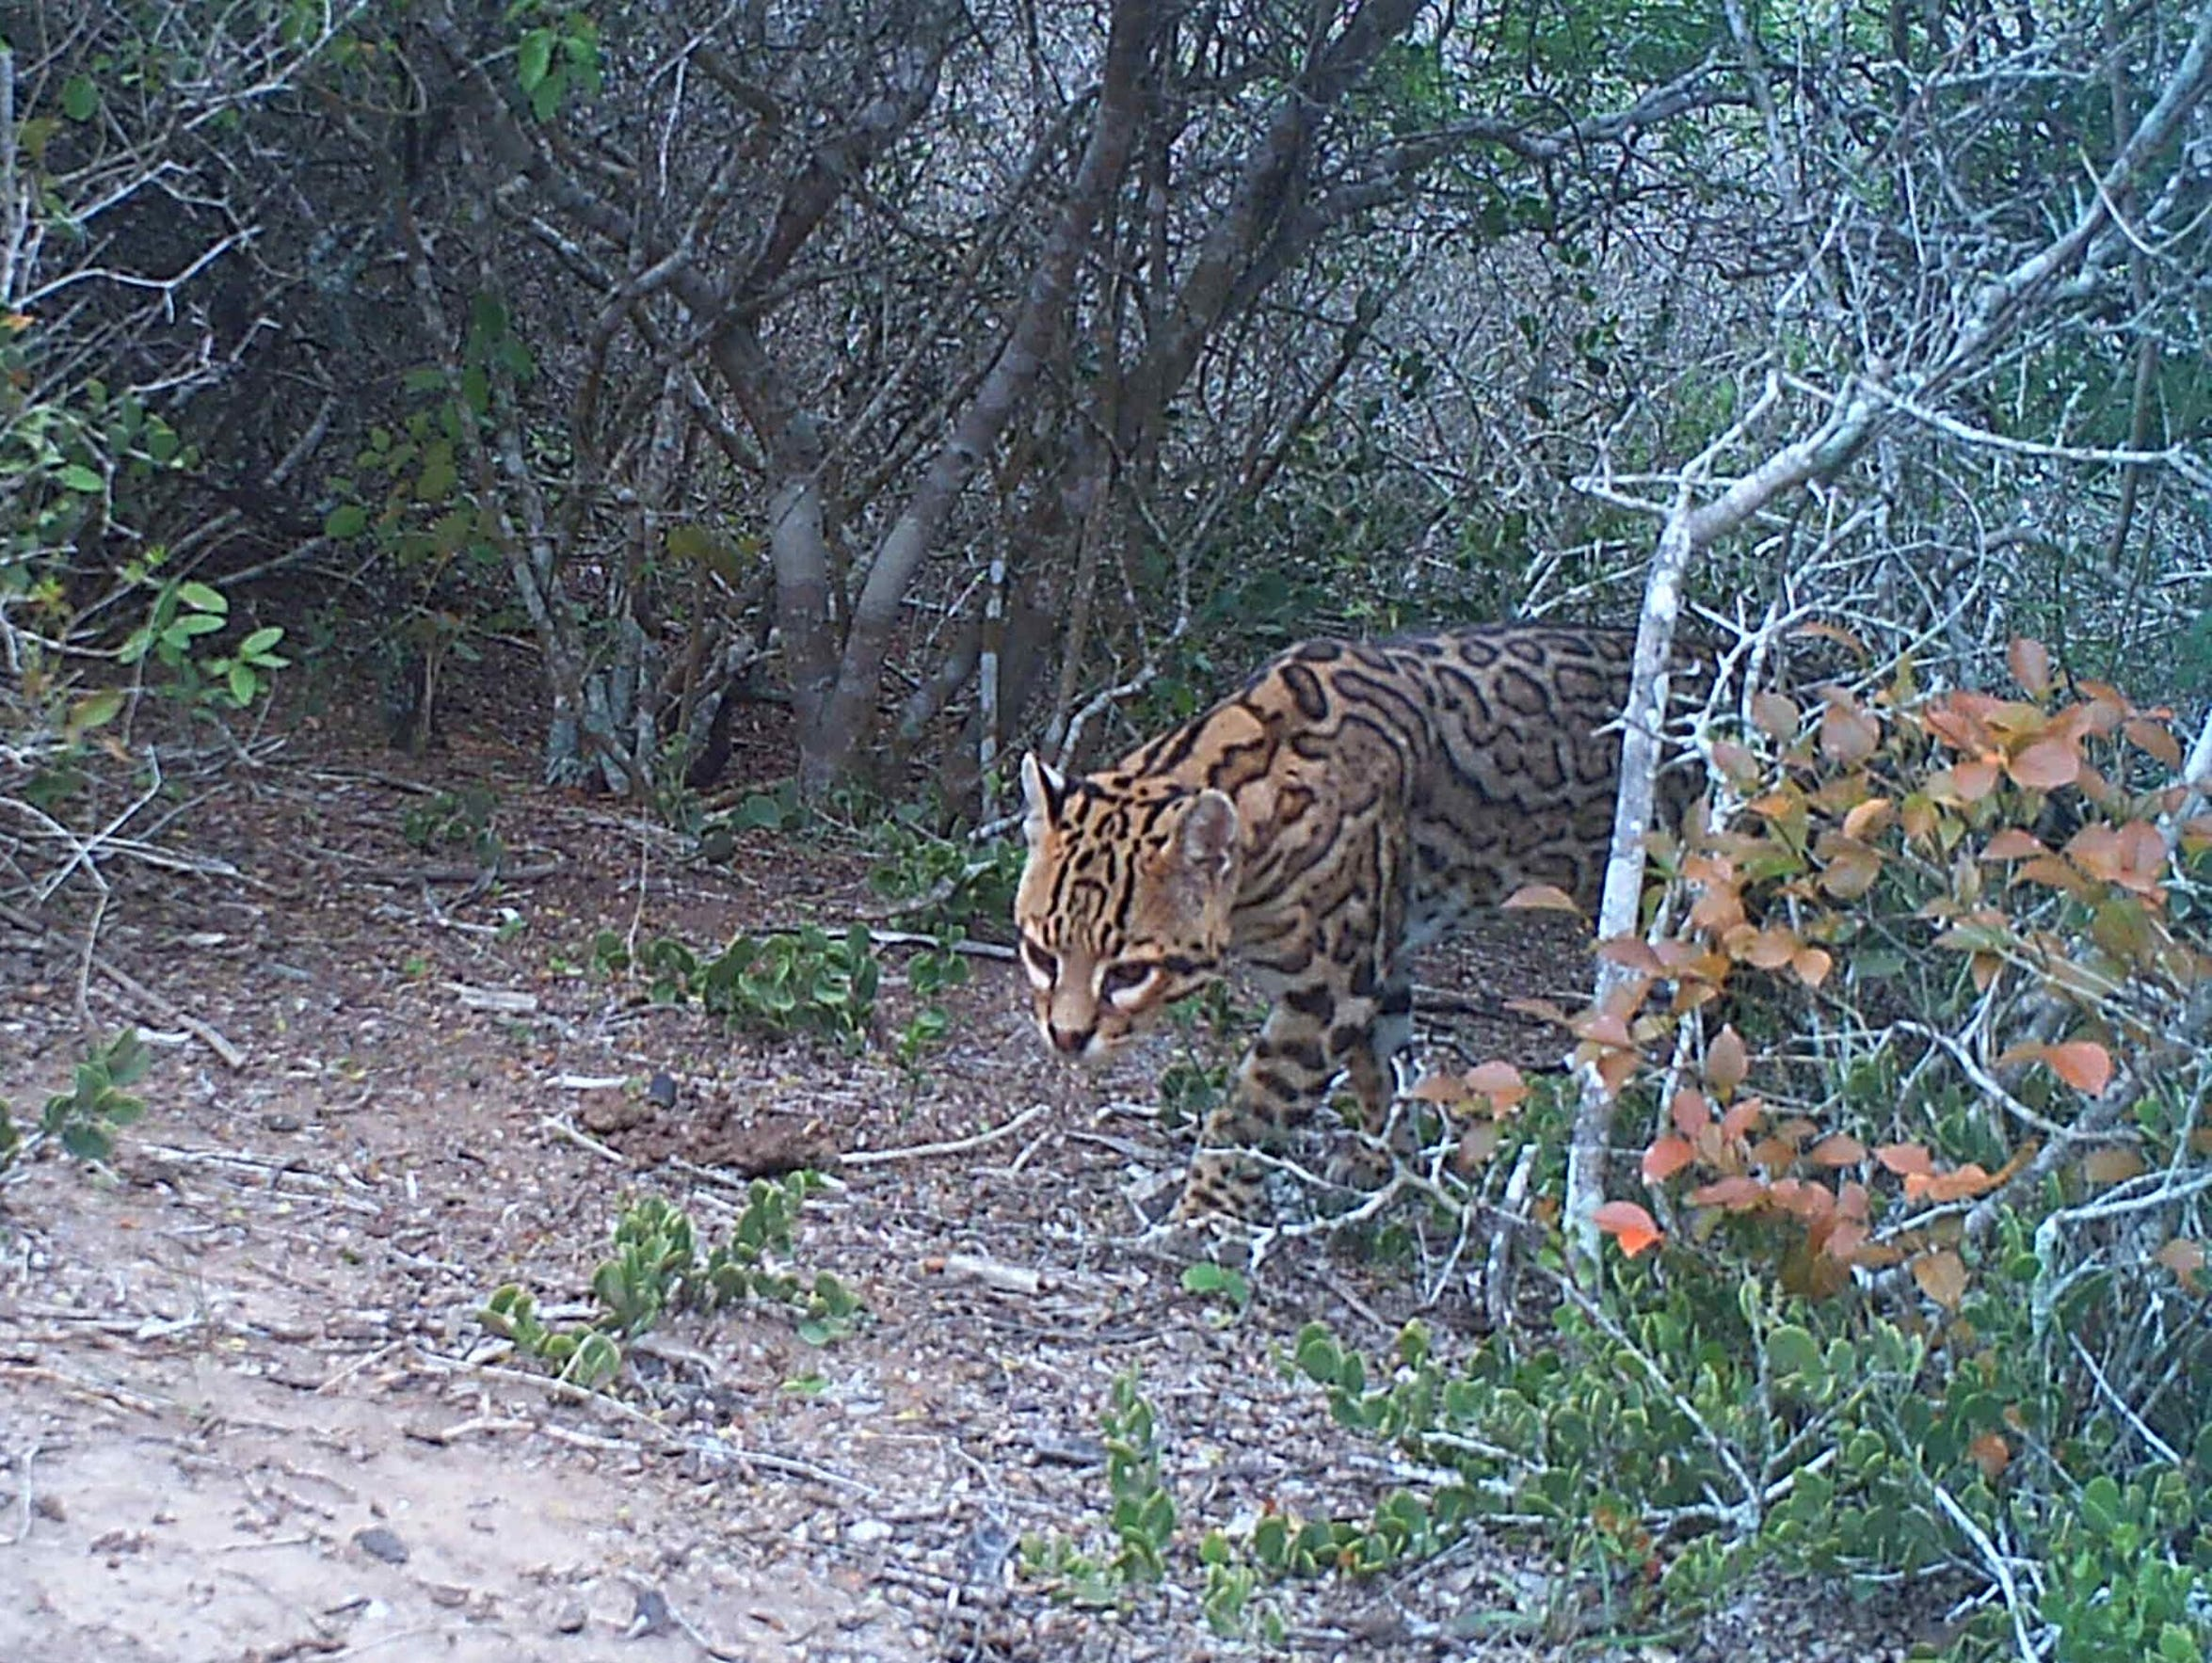 A male ocelot male at Laguna Atascosa National Wildlife